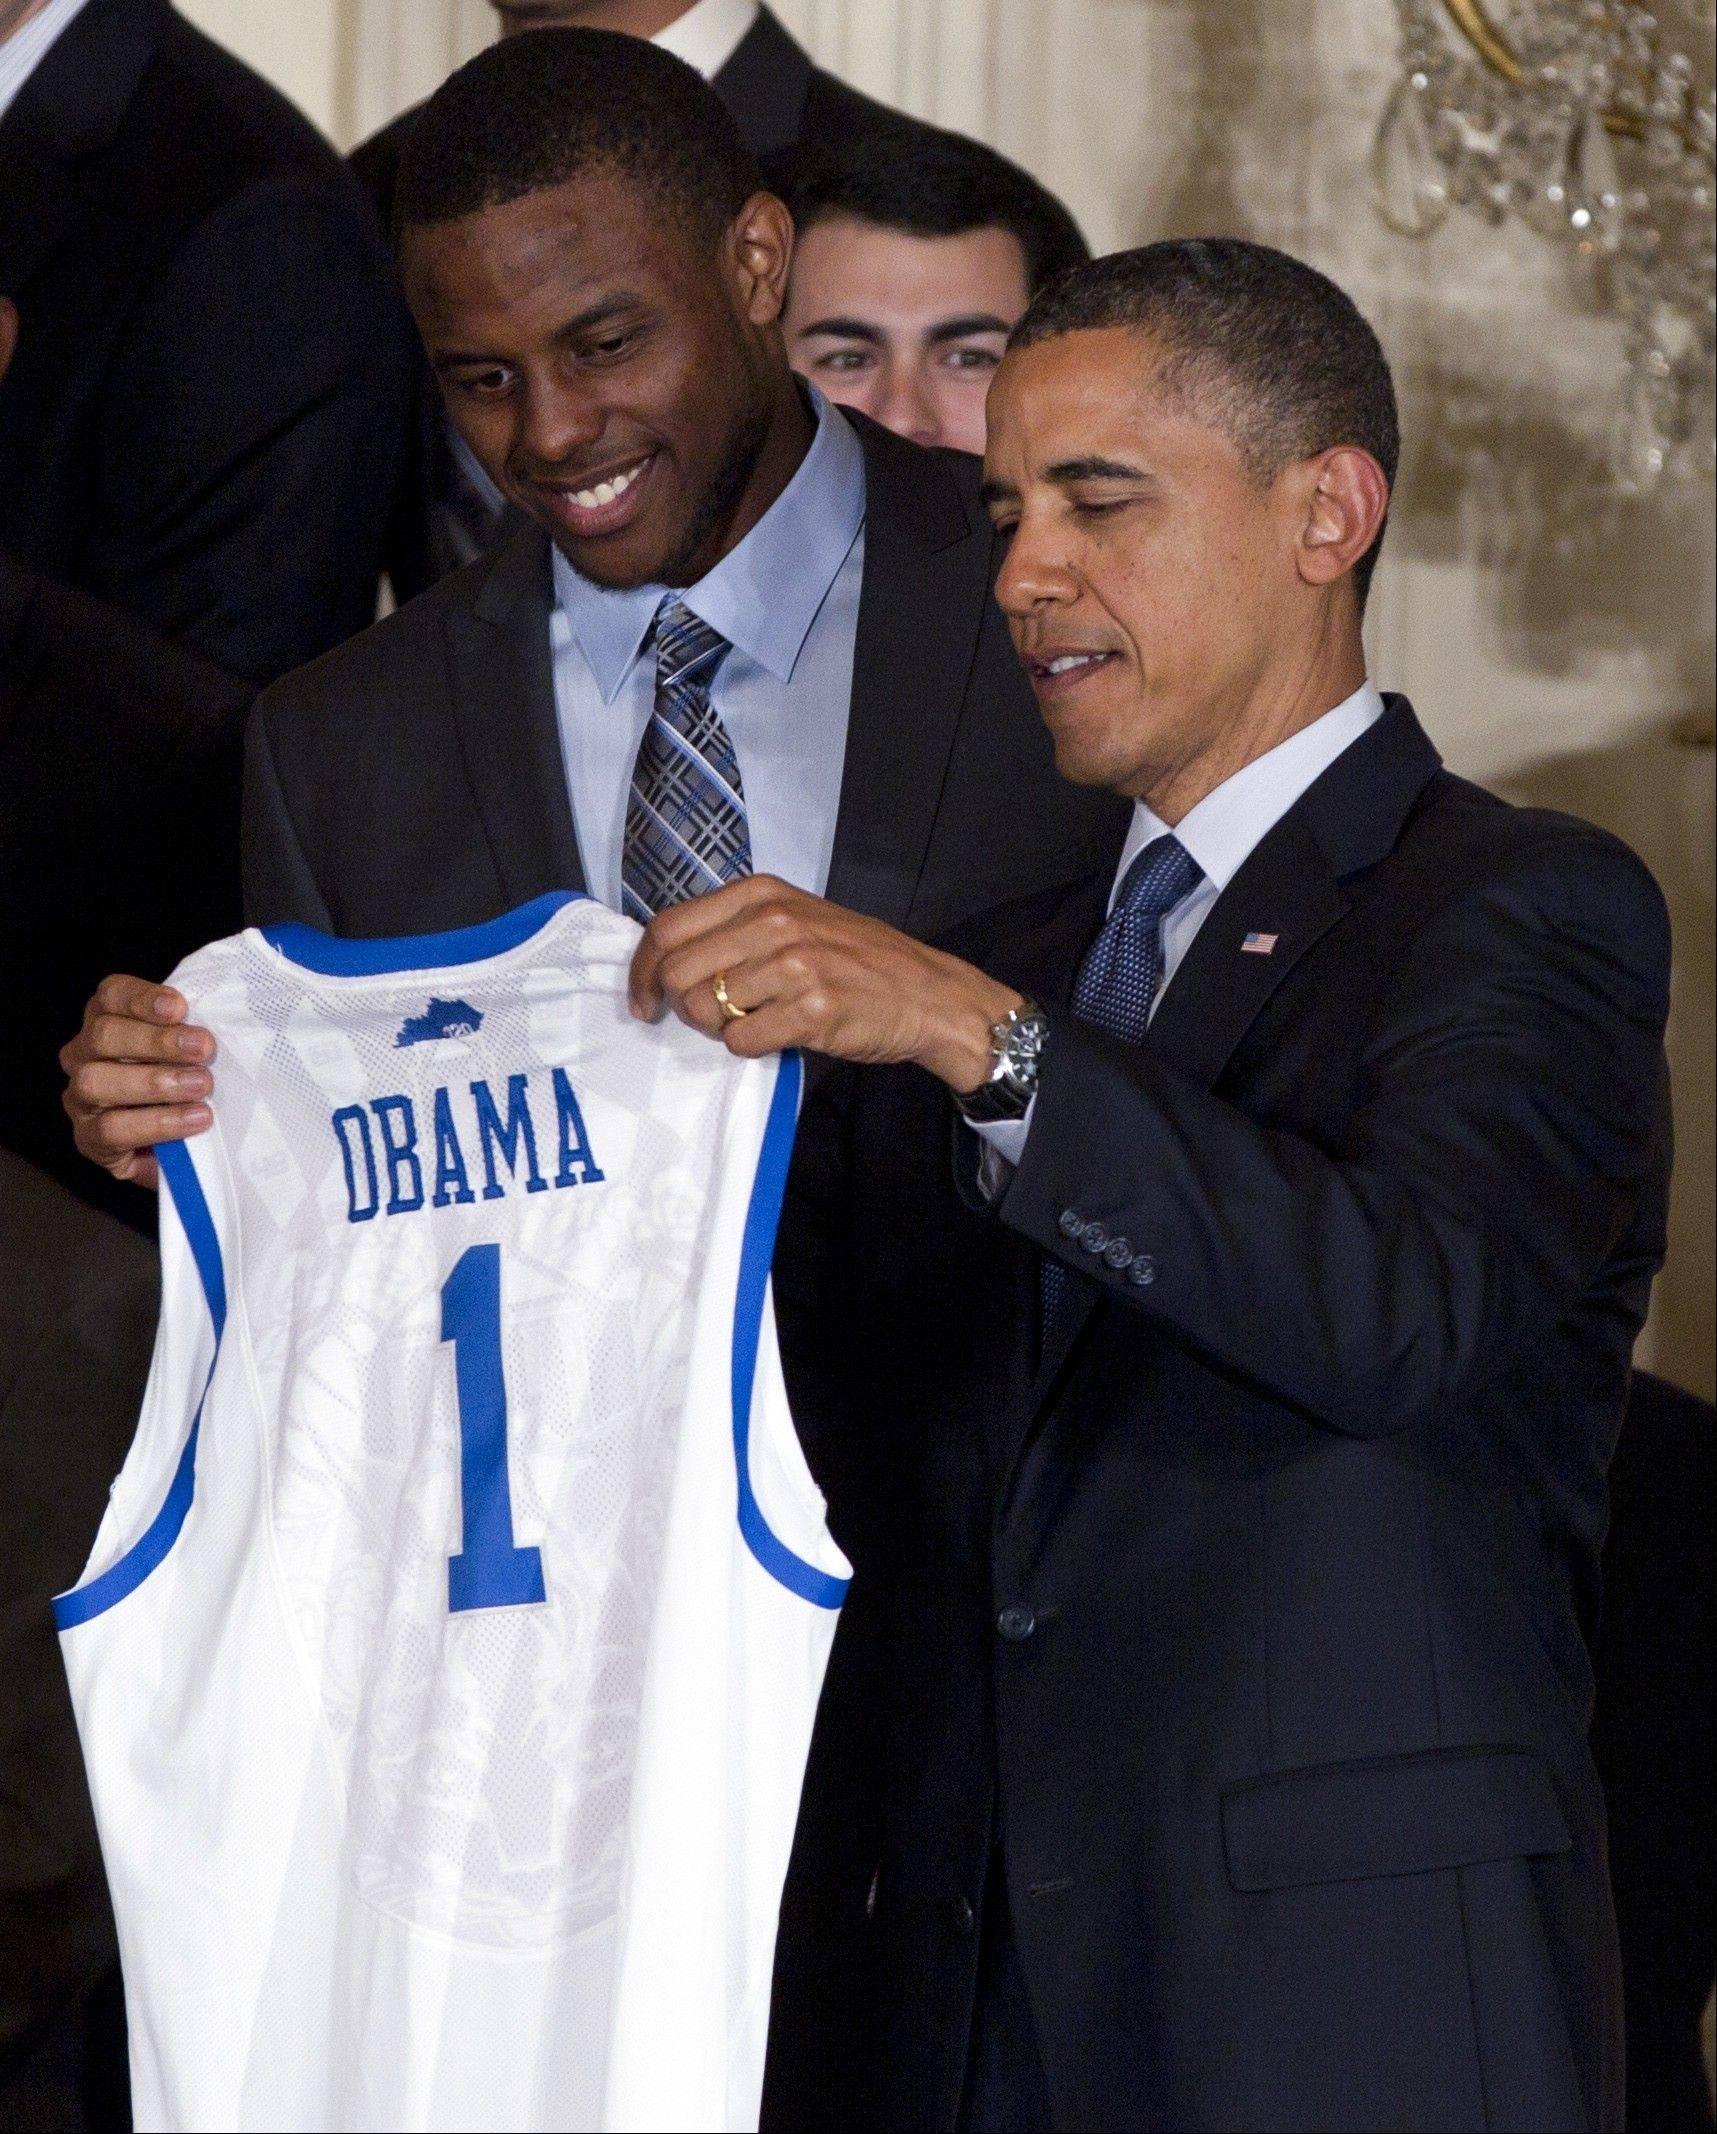 President Barack Obama accepts a University of Kentucky basketball jersey from guard Darius Miller during a celebration for the NCAA men's championship team May 4 at the White House.